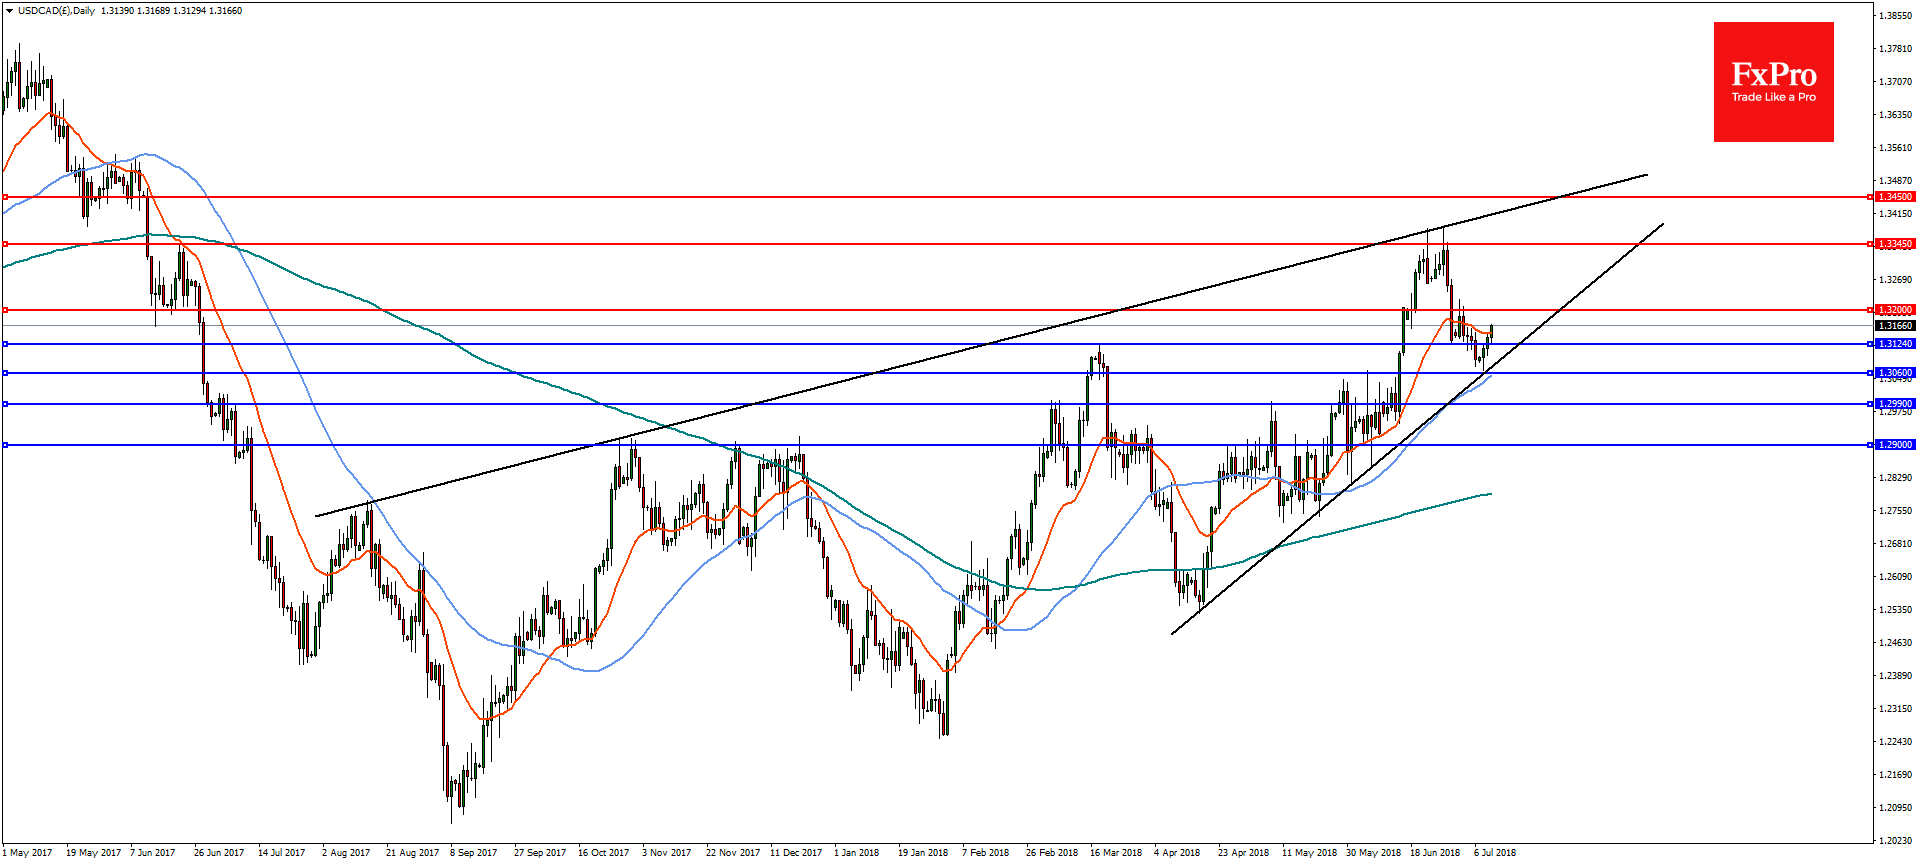 USDCAD and GBPCAD Analysis